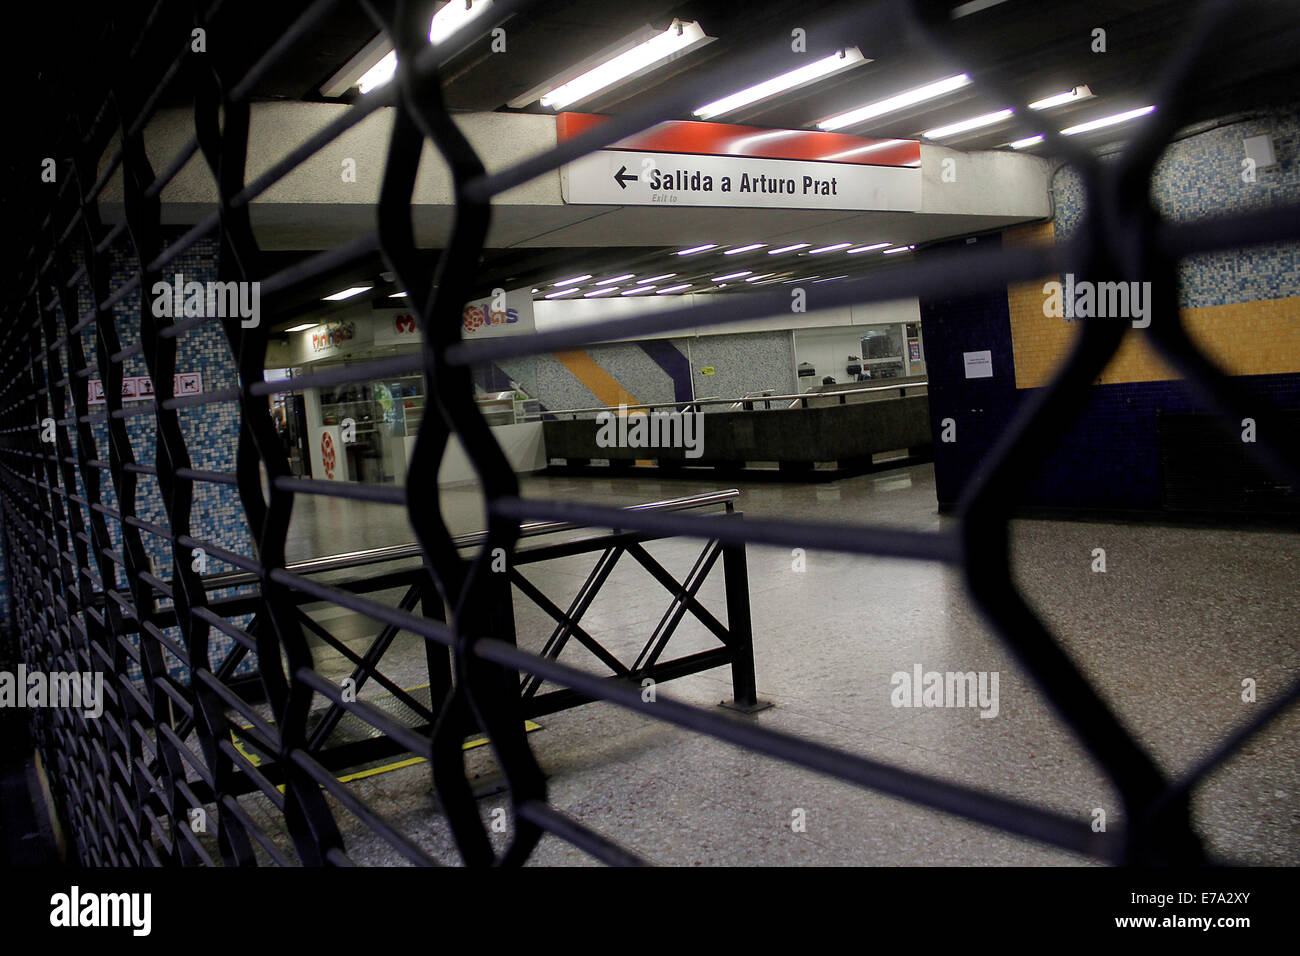 Santiago. 10th Sep, 2014. Image shows one of the exits of the Chile Metro Station that was evacuated because of - Stock Image